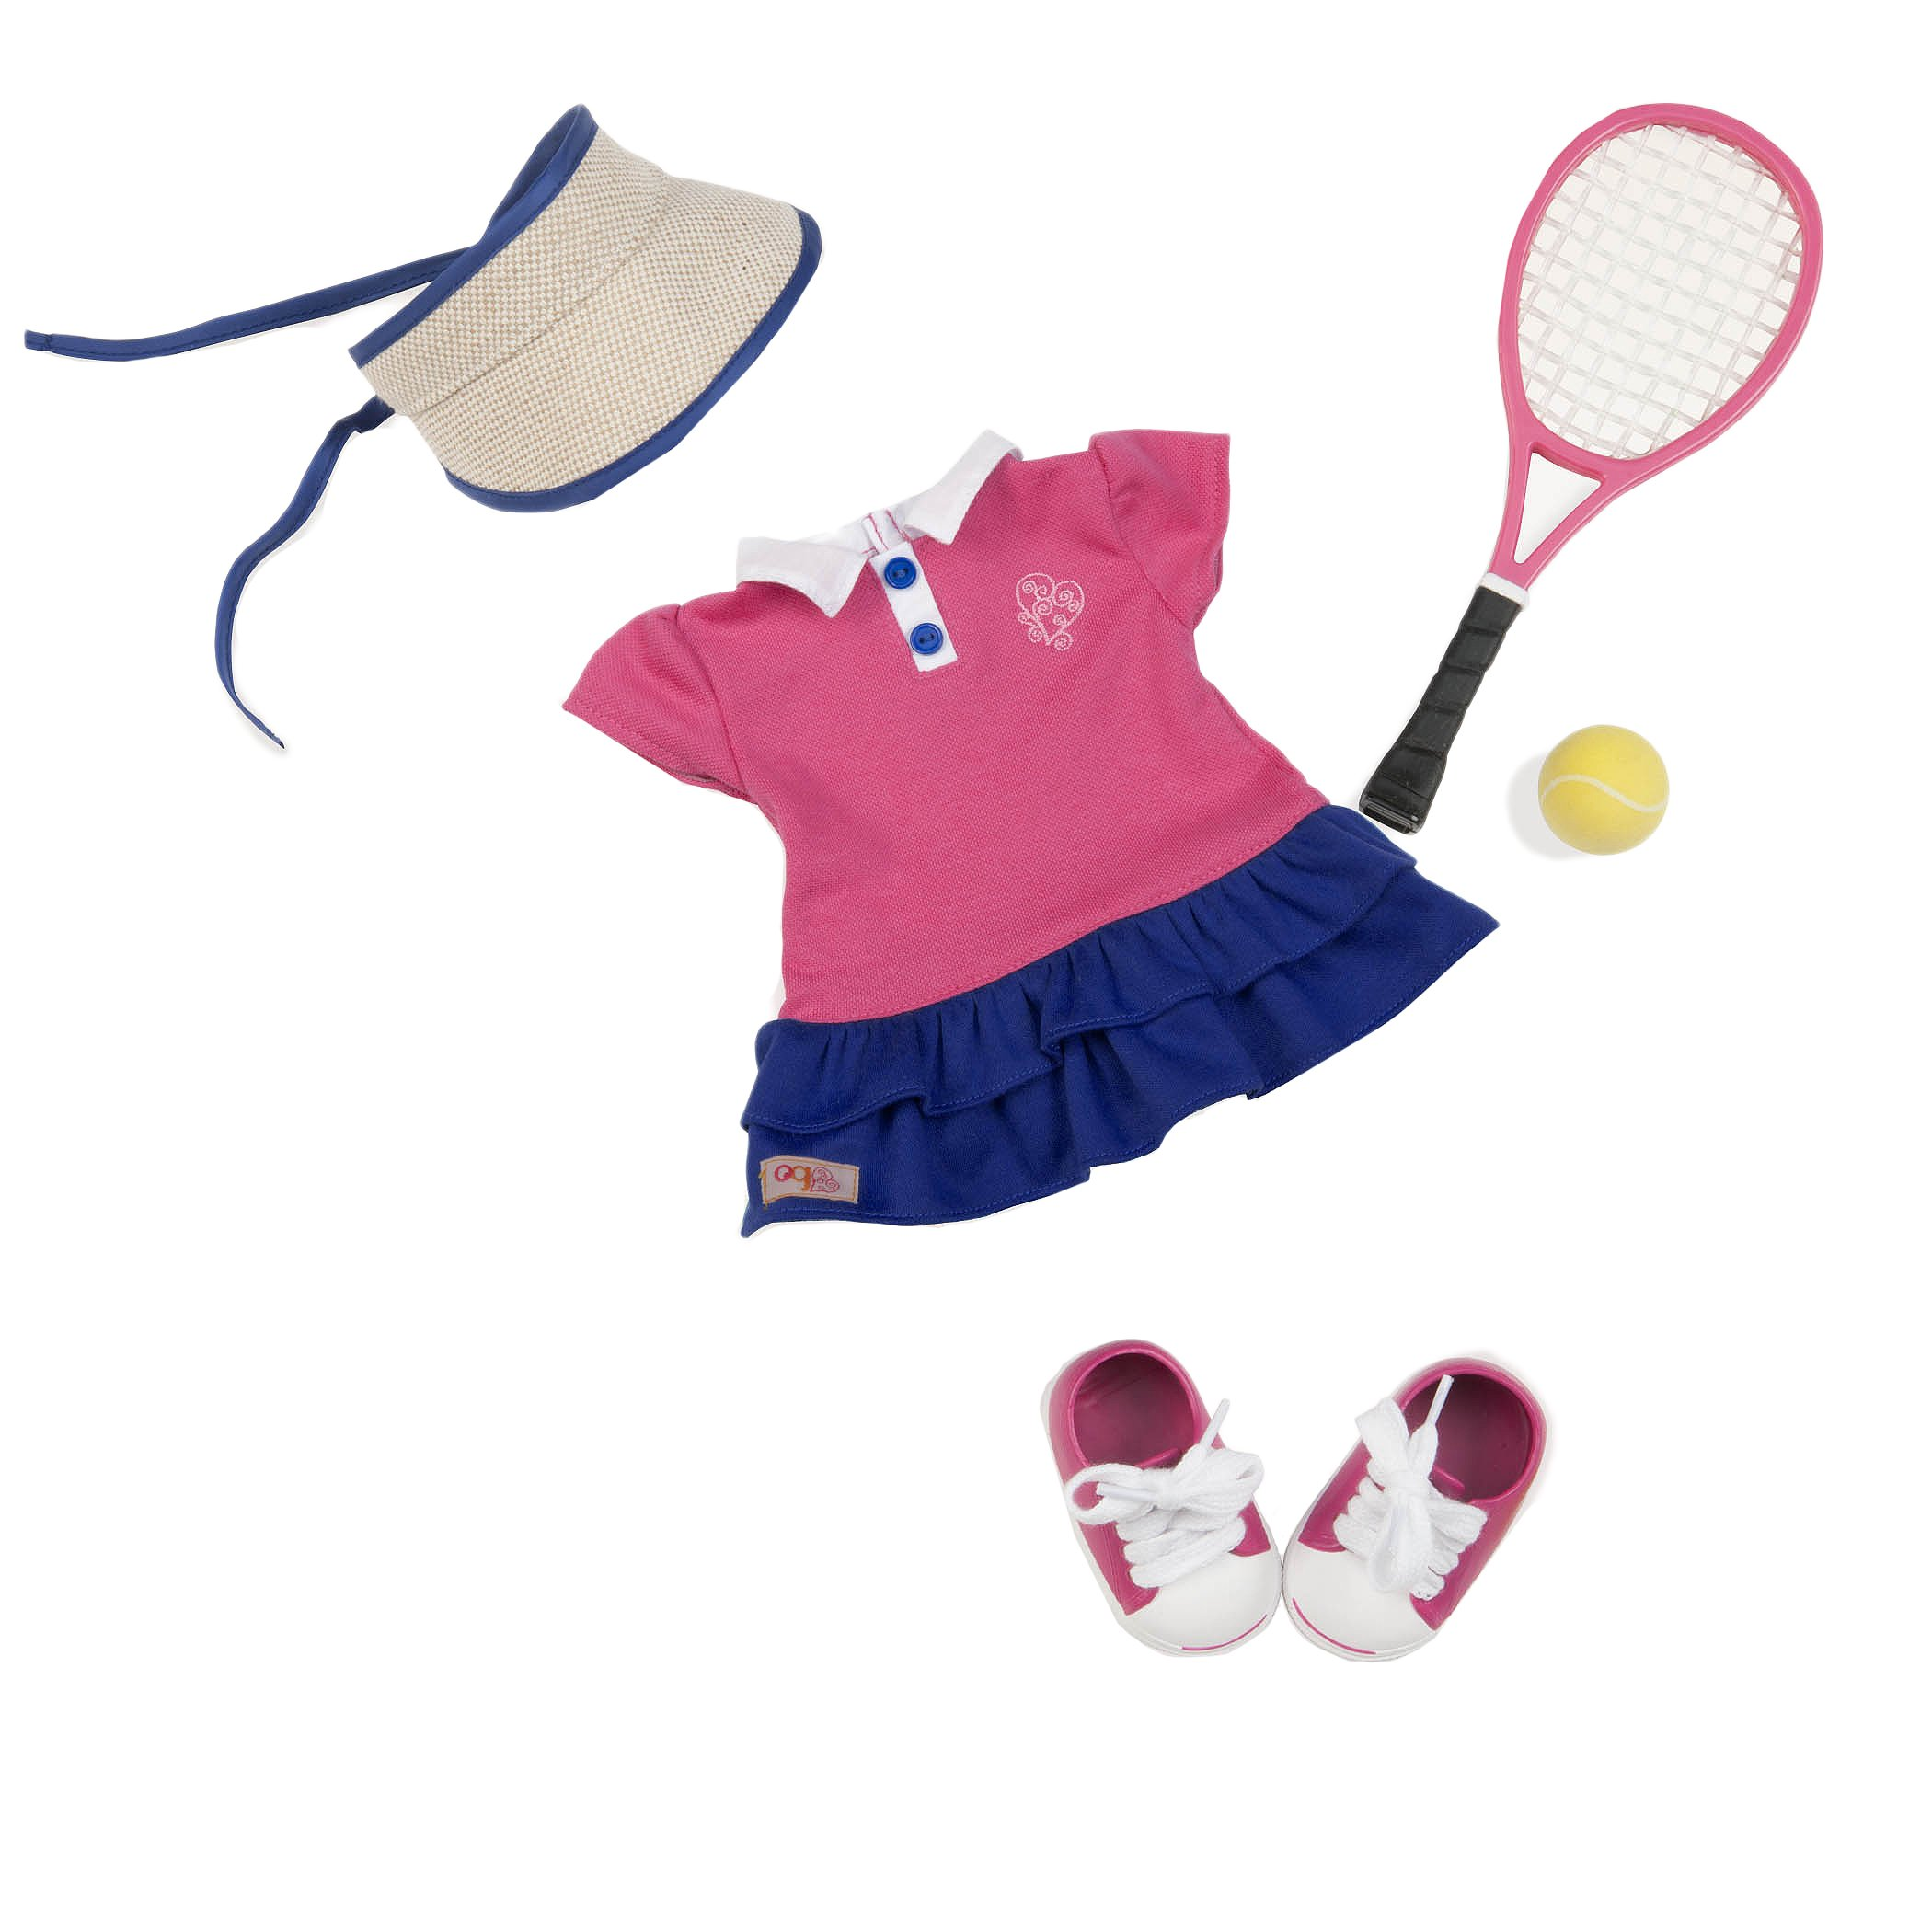 eb119db8c0cc6 Details about Our Generation Ace'd It! Tennis Outfit with Accessories for  18-Inch Dolls